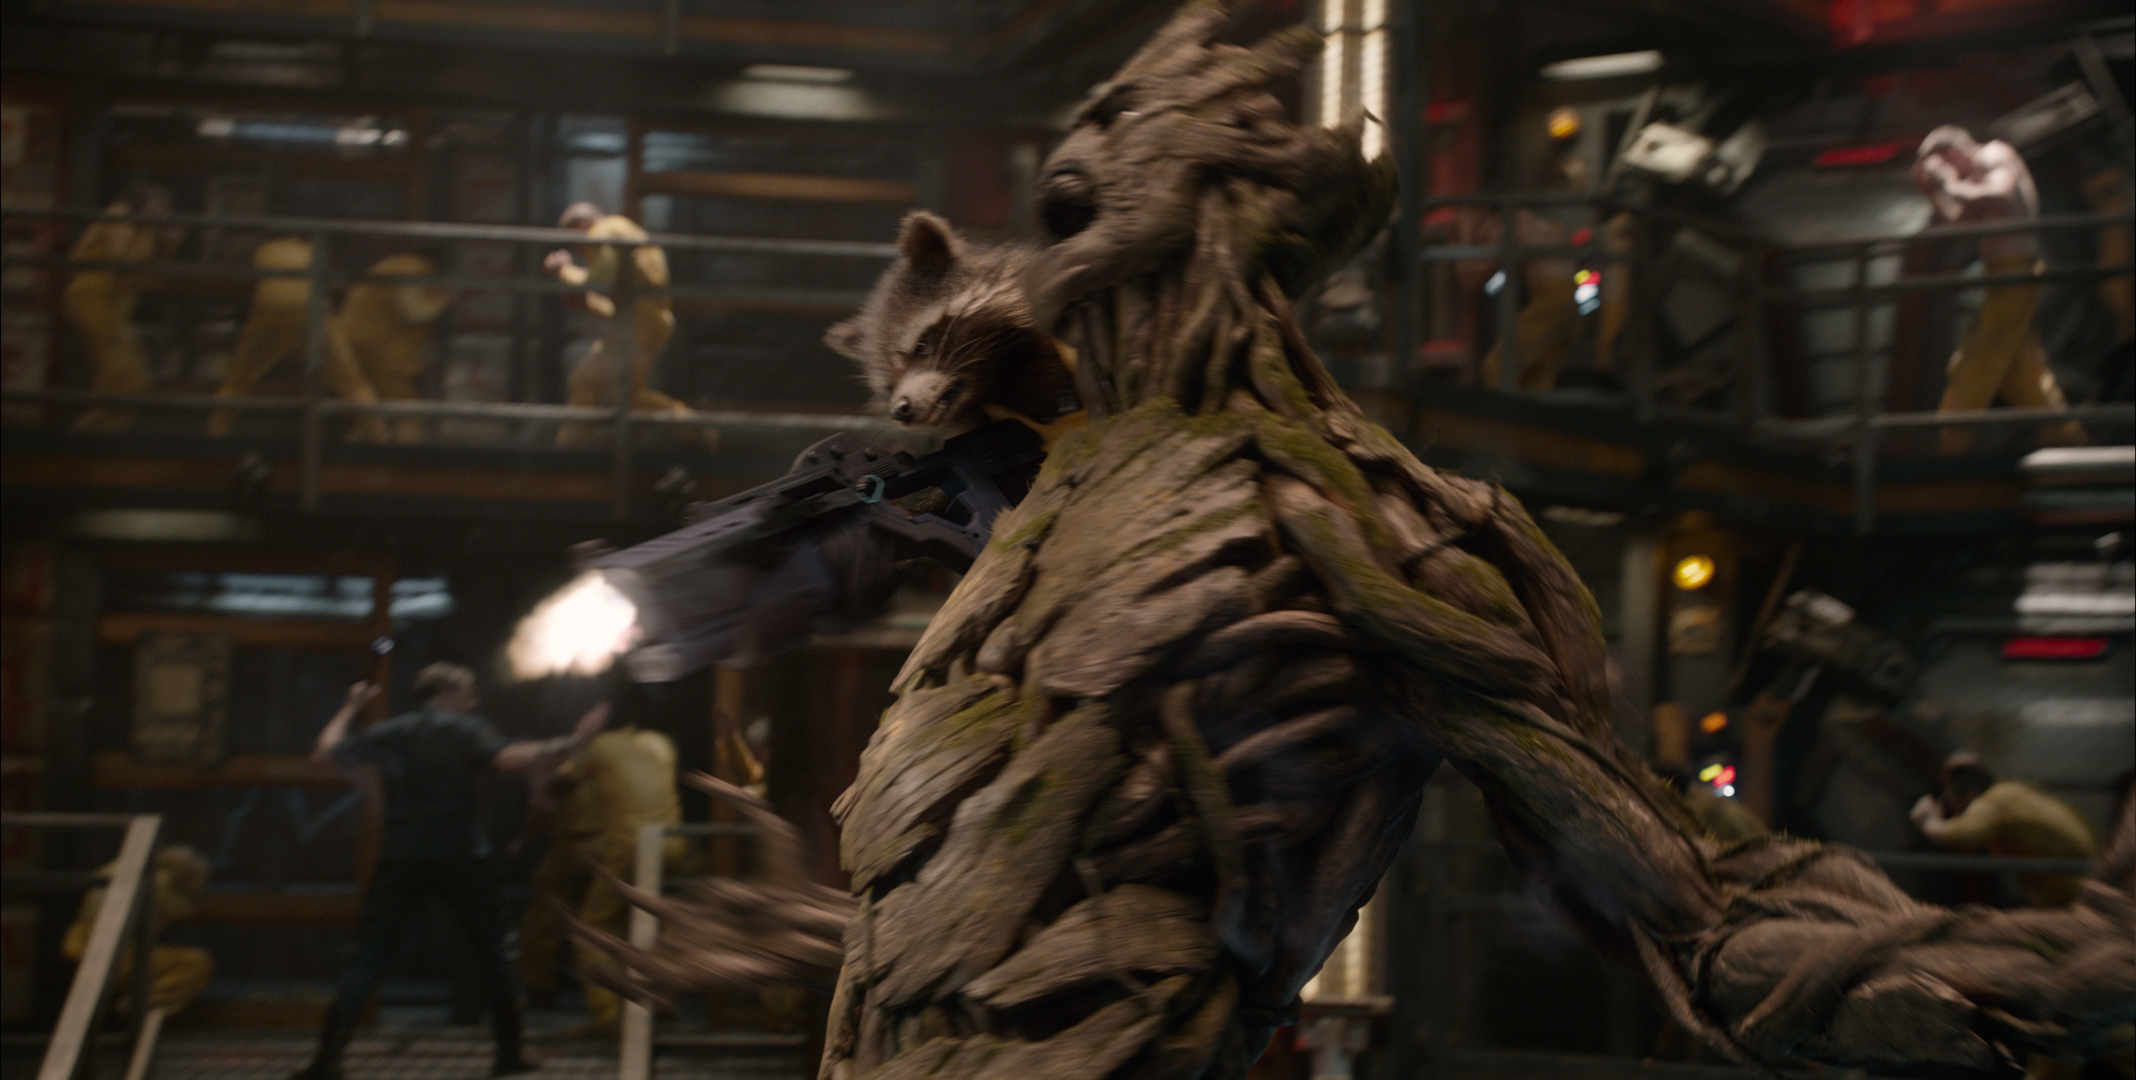 the_guardians_of_the_galaxy_12.jpg